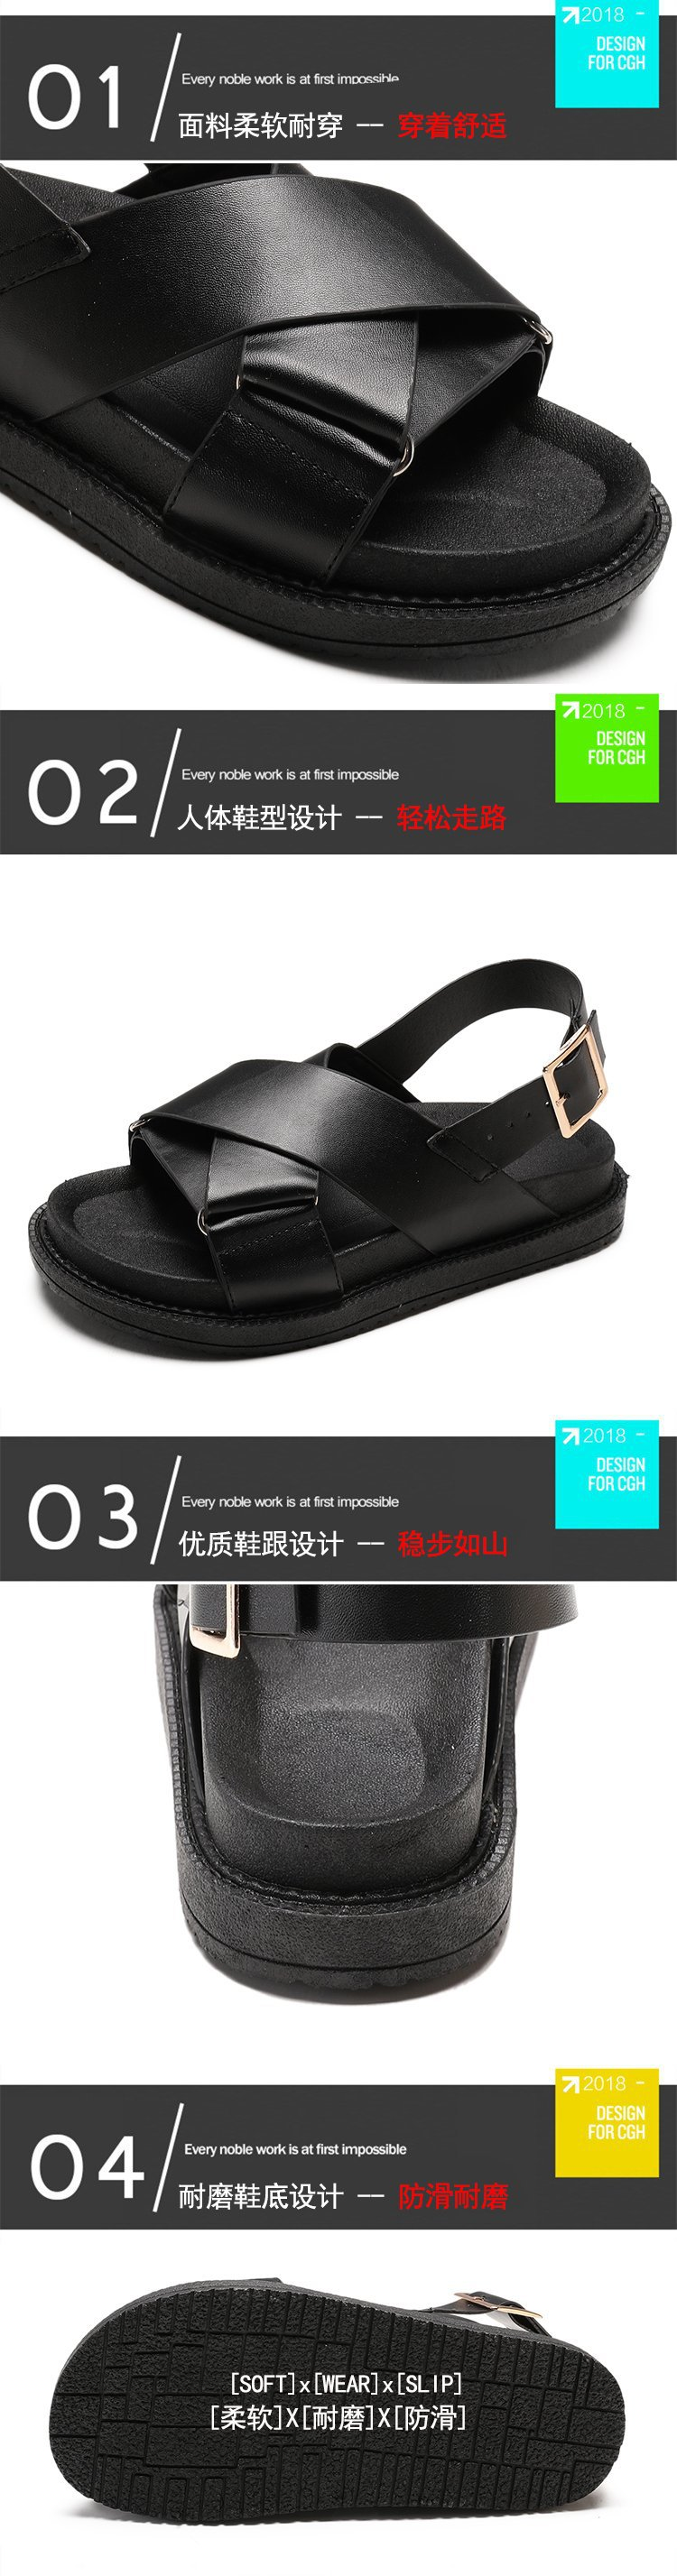 b2aac5a5f7702 Shoes women 2018 summer fashion new hot women's shoes Amazon flat bottom  Roman cross belt sandals